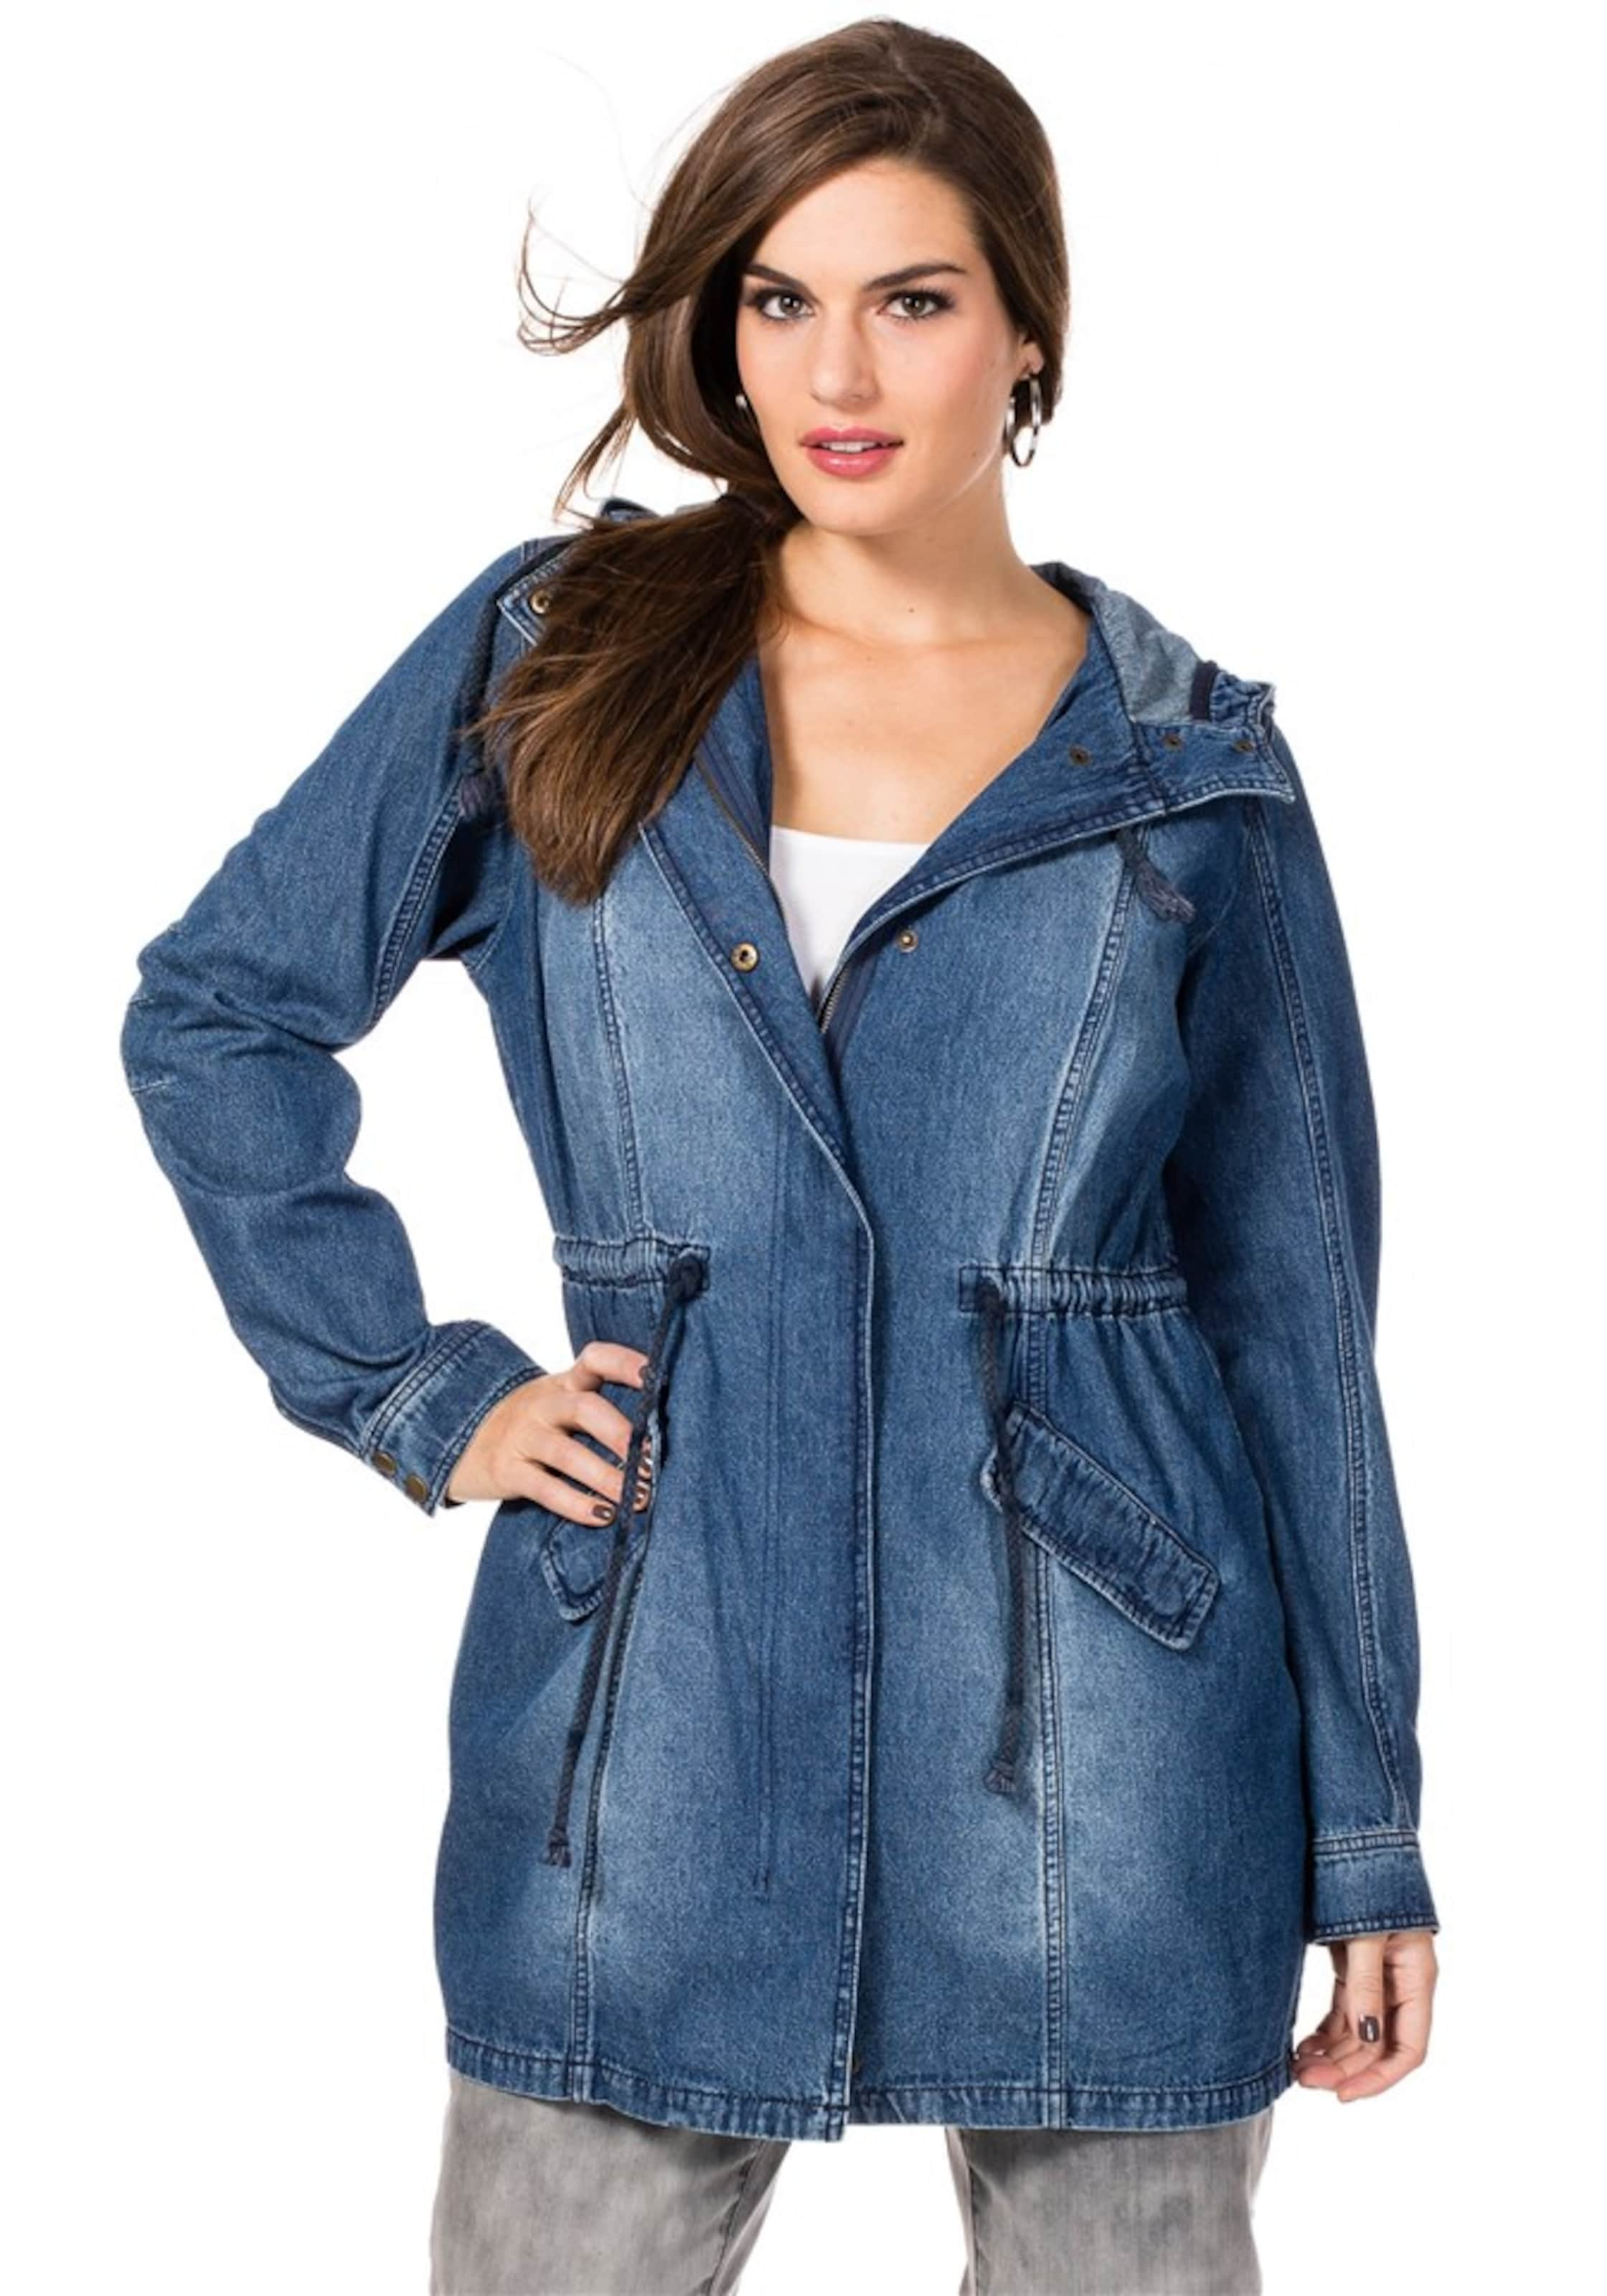 Denim In Blau Jeansparka Jeansparka Blau Sheego Sheego Denim In rxhBsdtQC